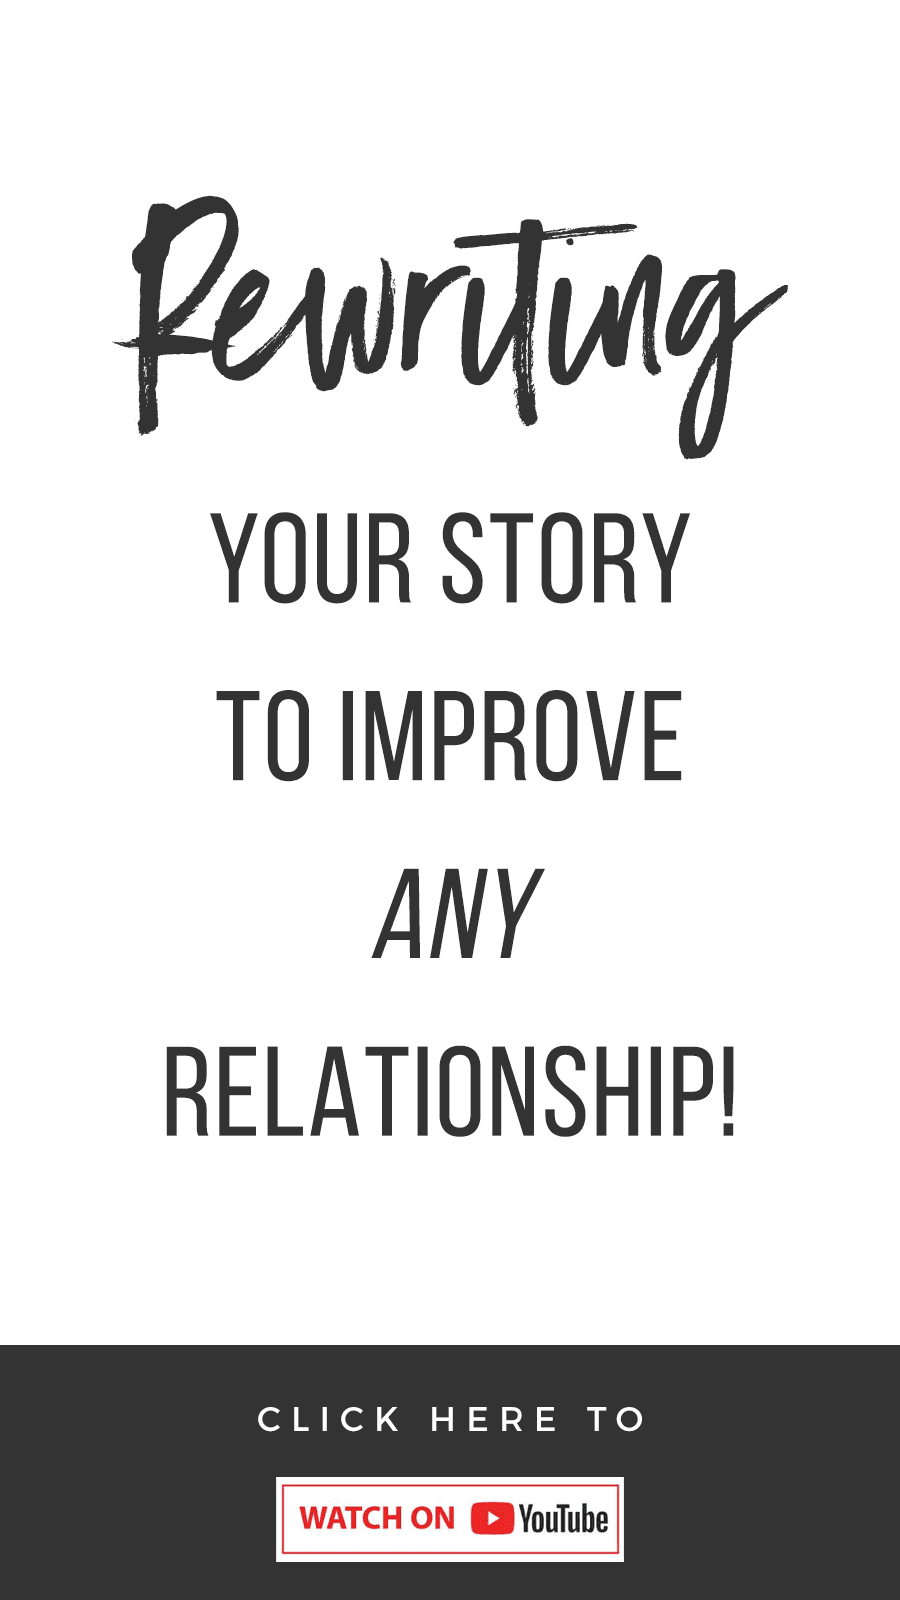 Rewriting Your Story To Improve Any Relationship